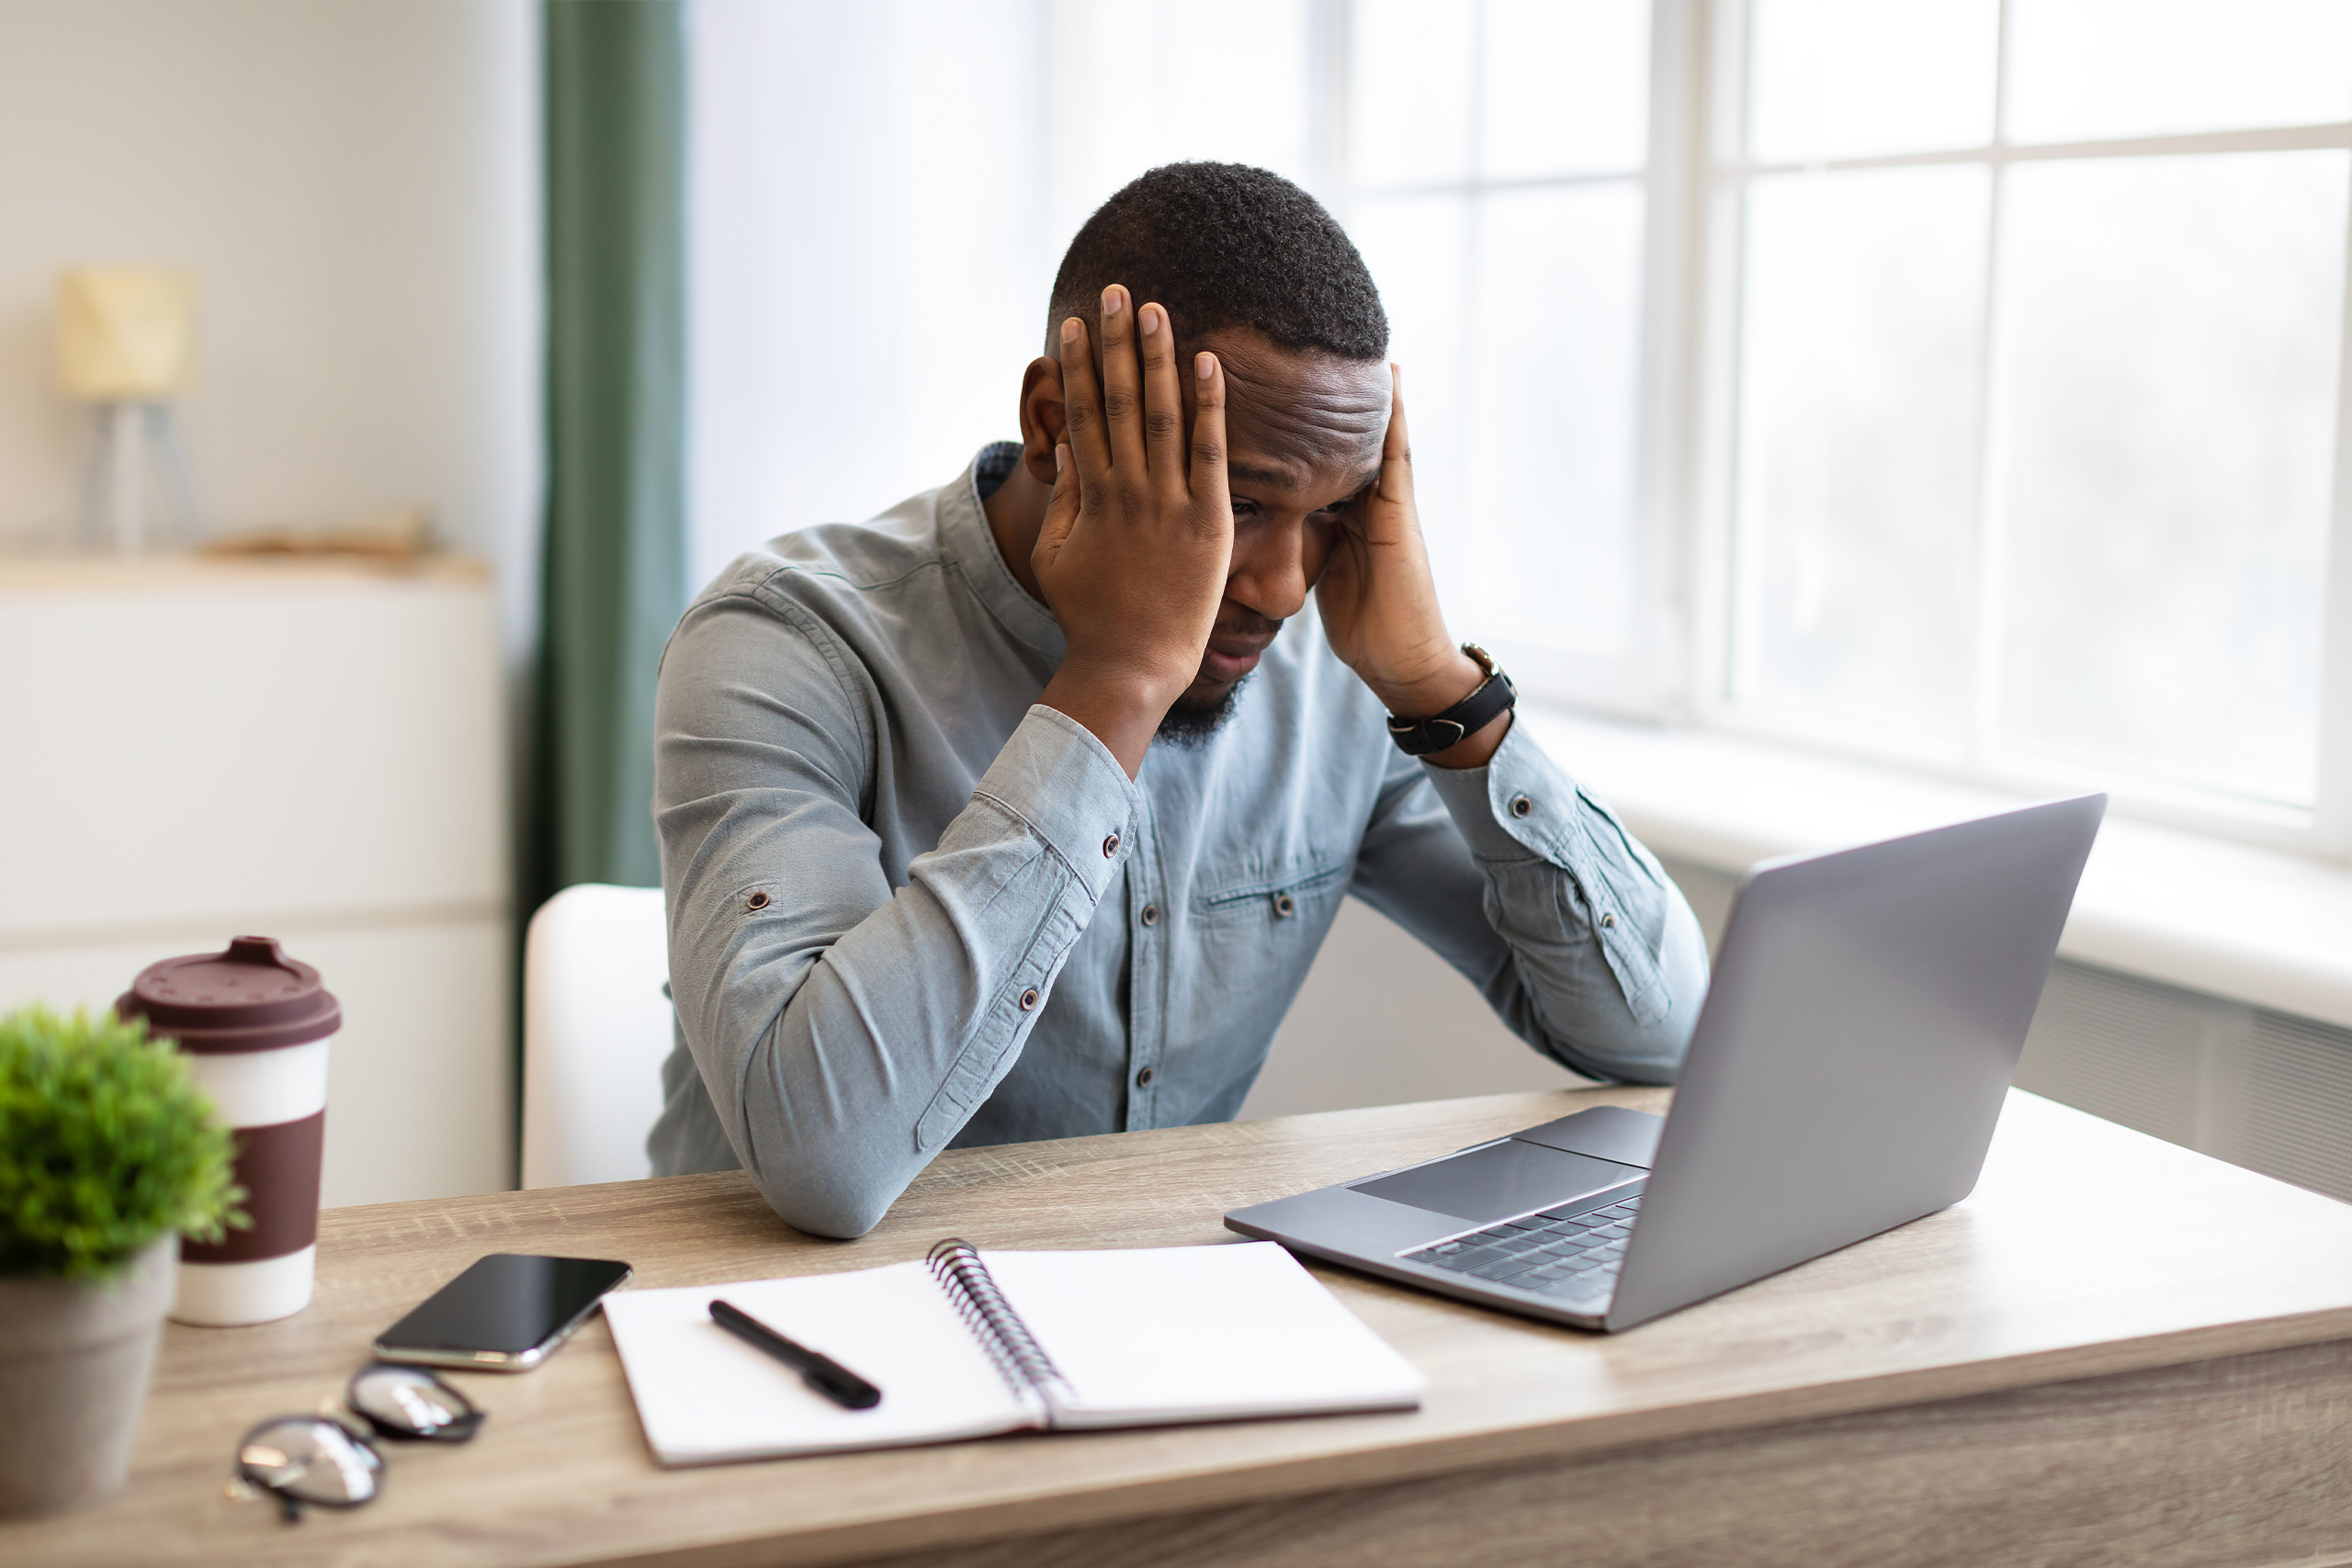 Signs of Burnout